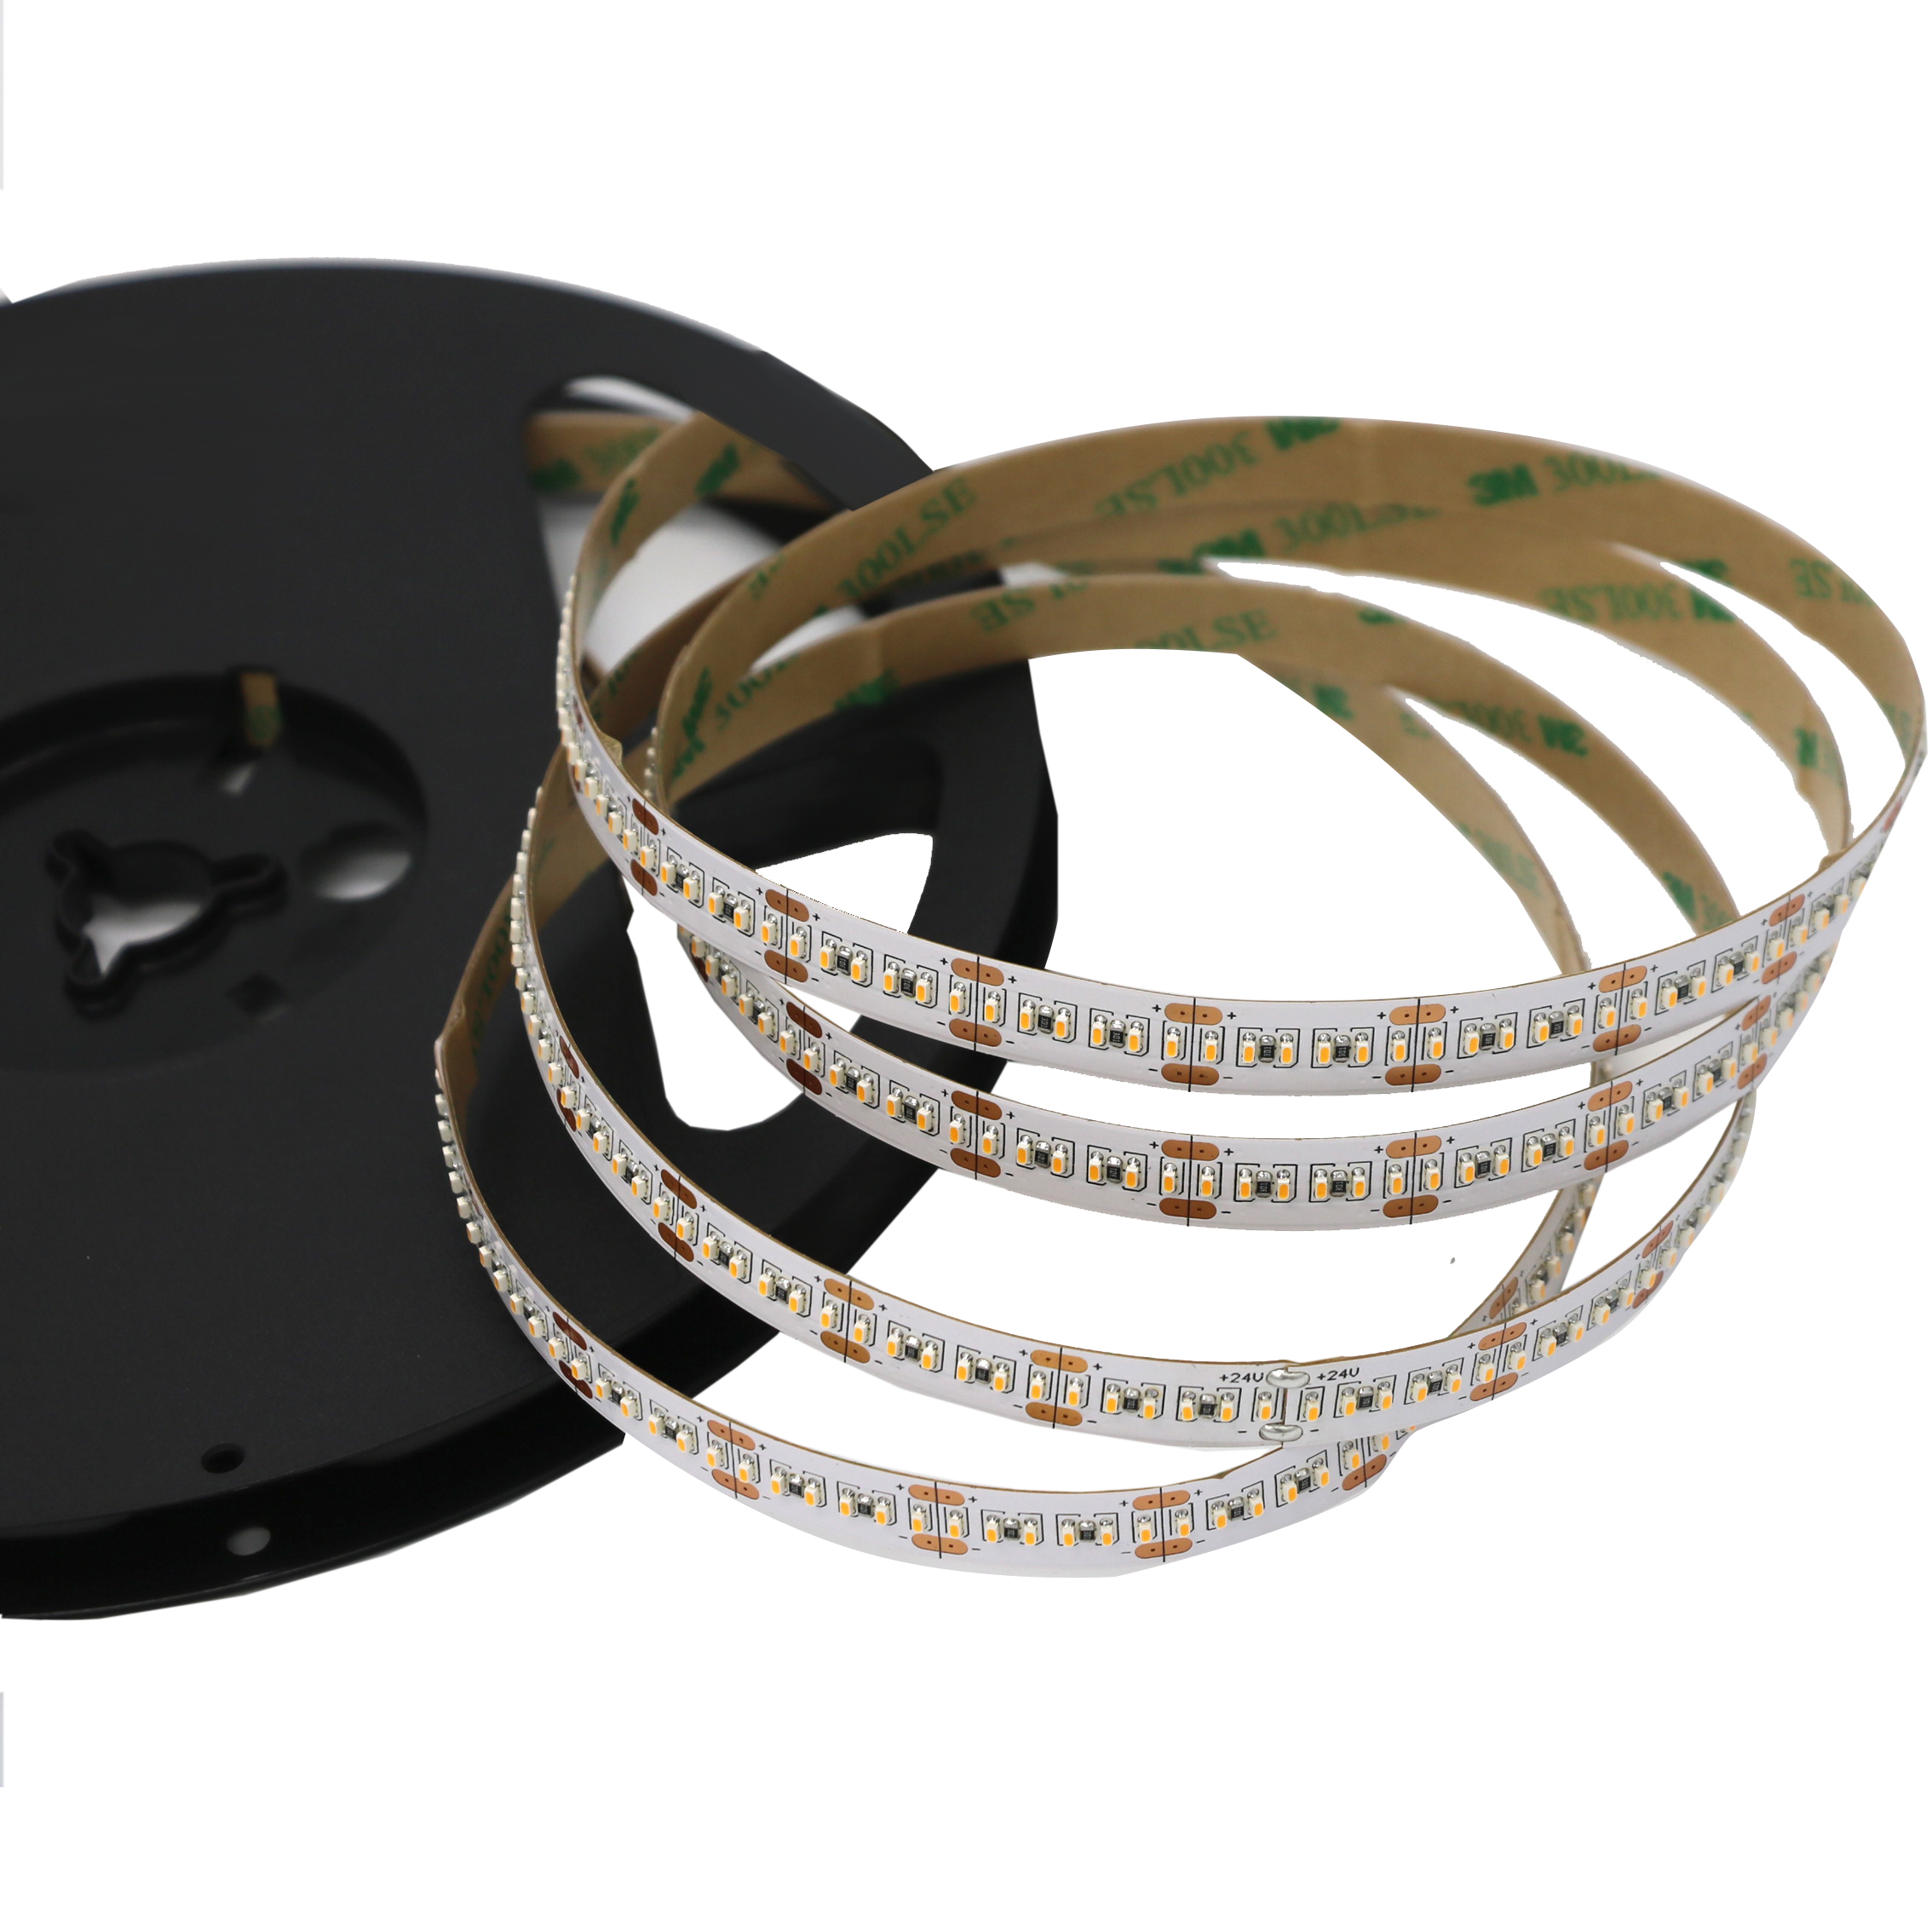 Led strip lights manufacturer 20m 15m